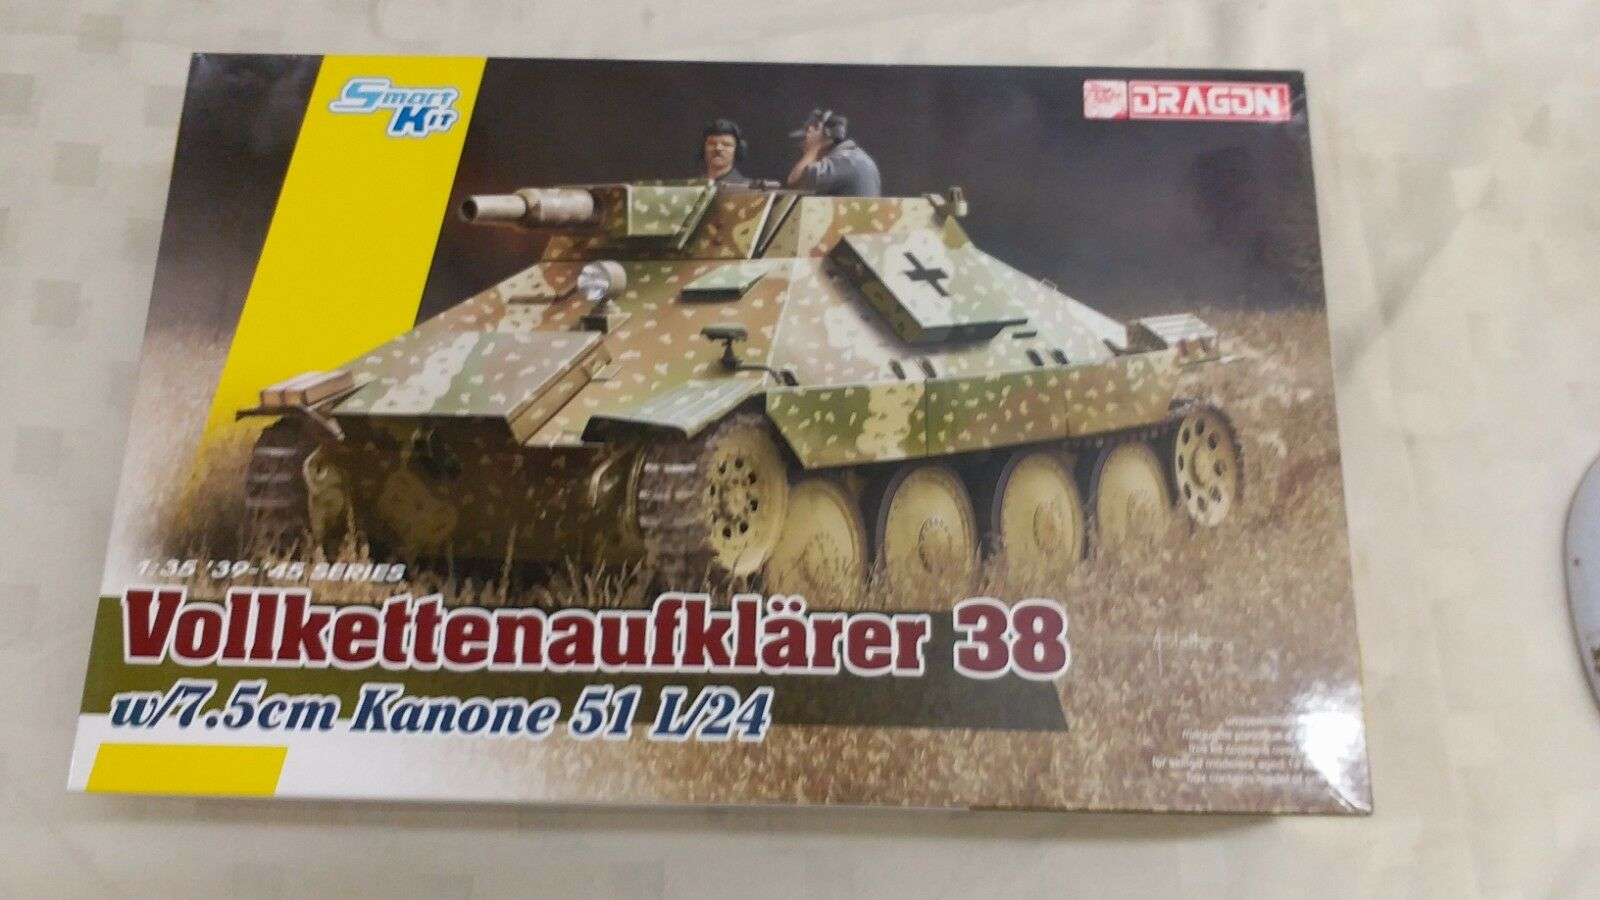 DRAGON 1 35 VOLLKETTENAUFKLARER 38 w 7.5cm Kanone 51 L 24 Model Kit BNIB